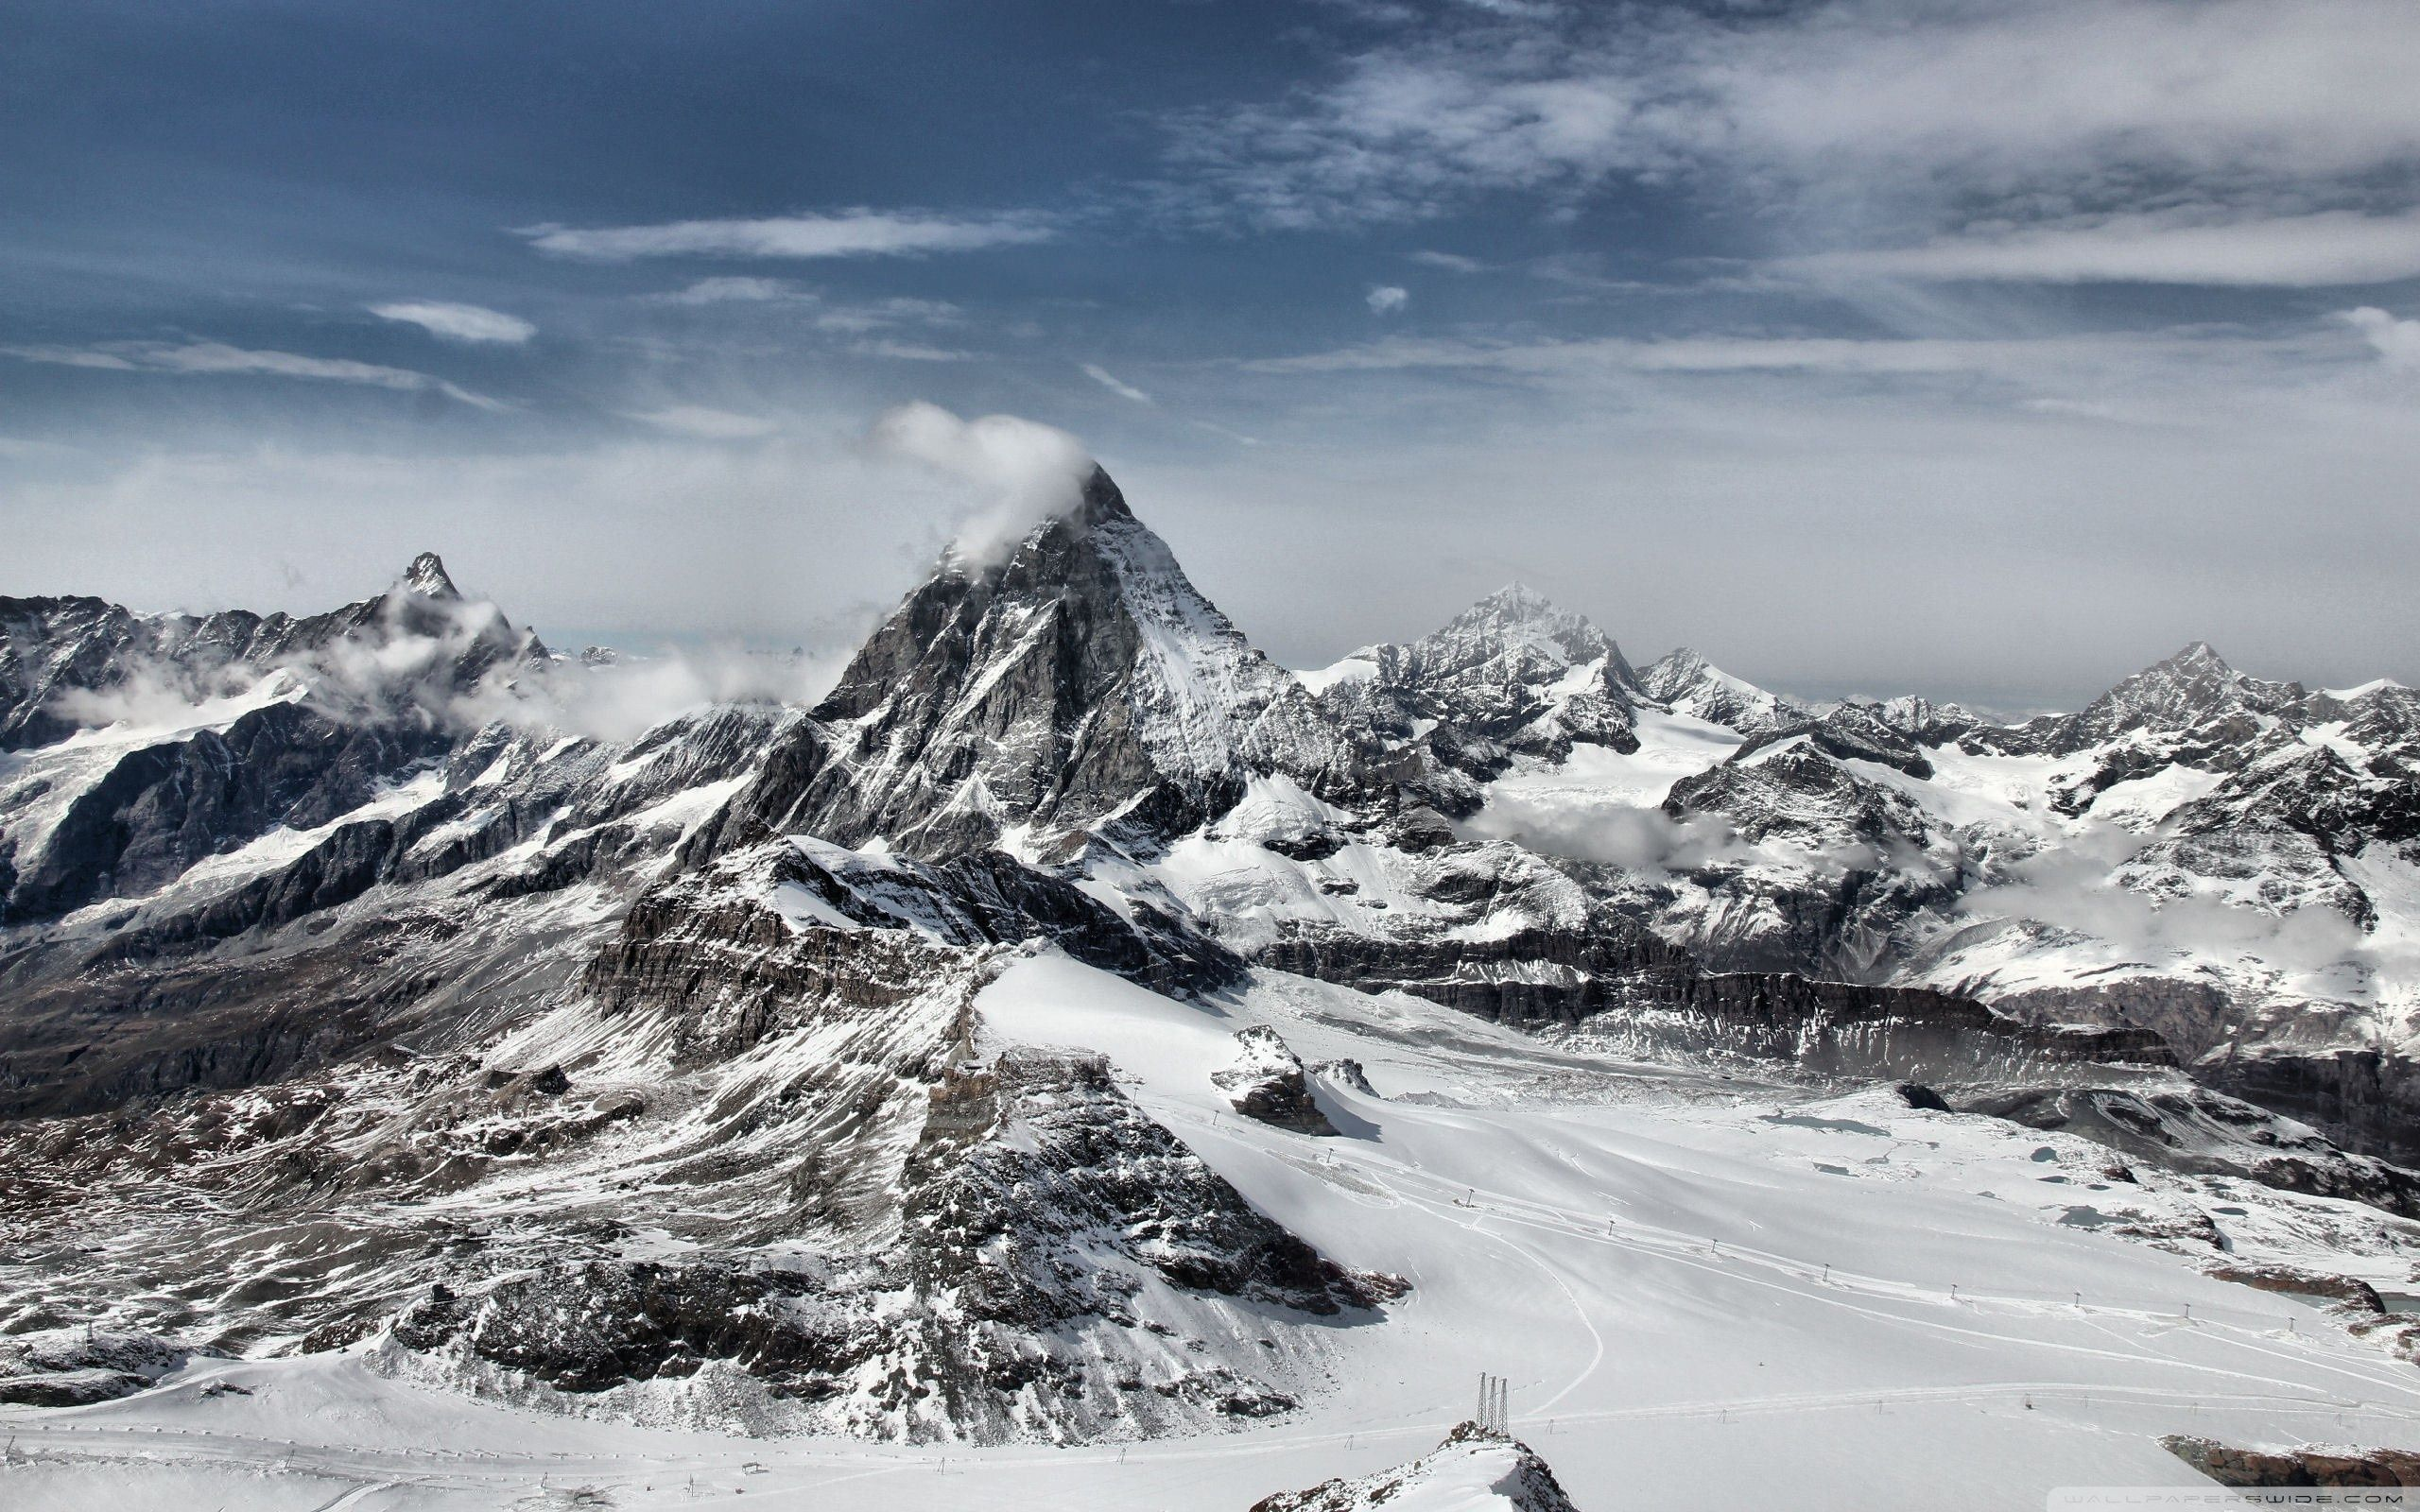 Snow Mountain Wallpaper Hd Posted By Michelle Cunningham